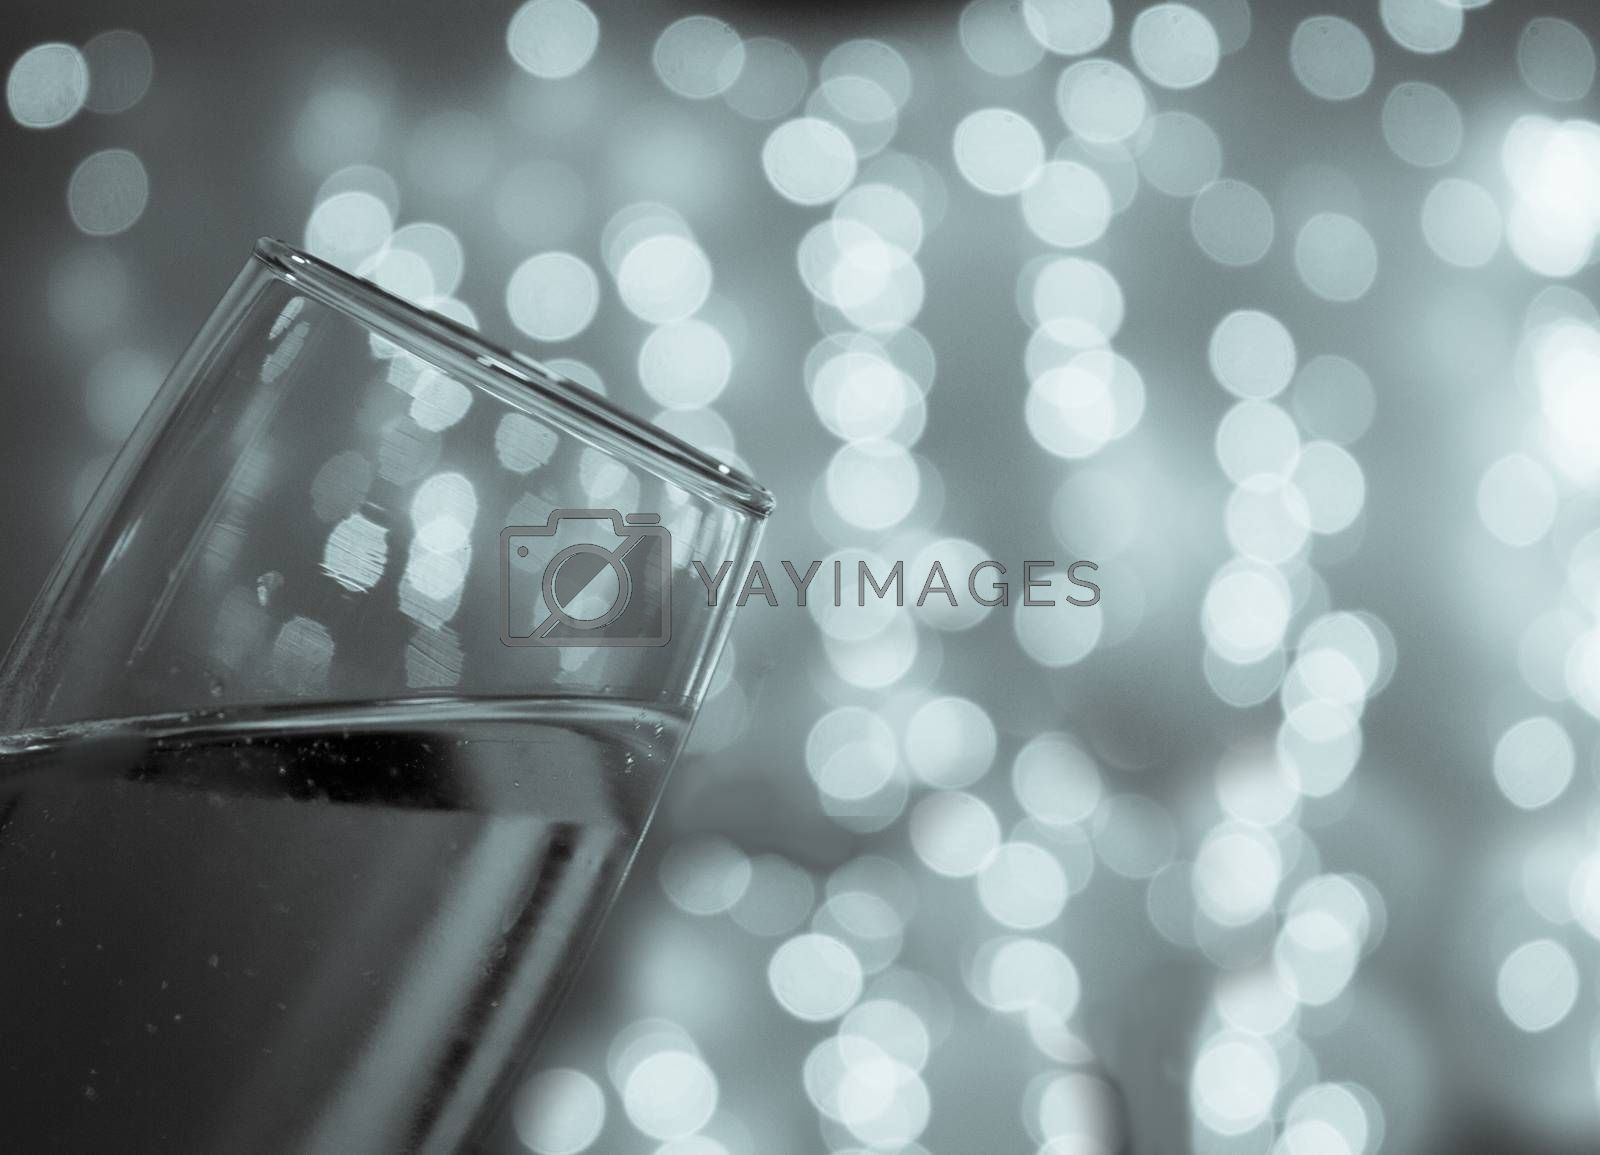 Toast with a champagne glass over defocused background